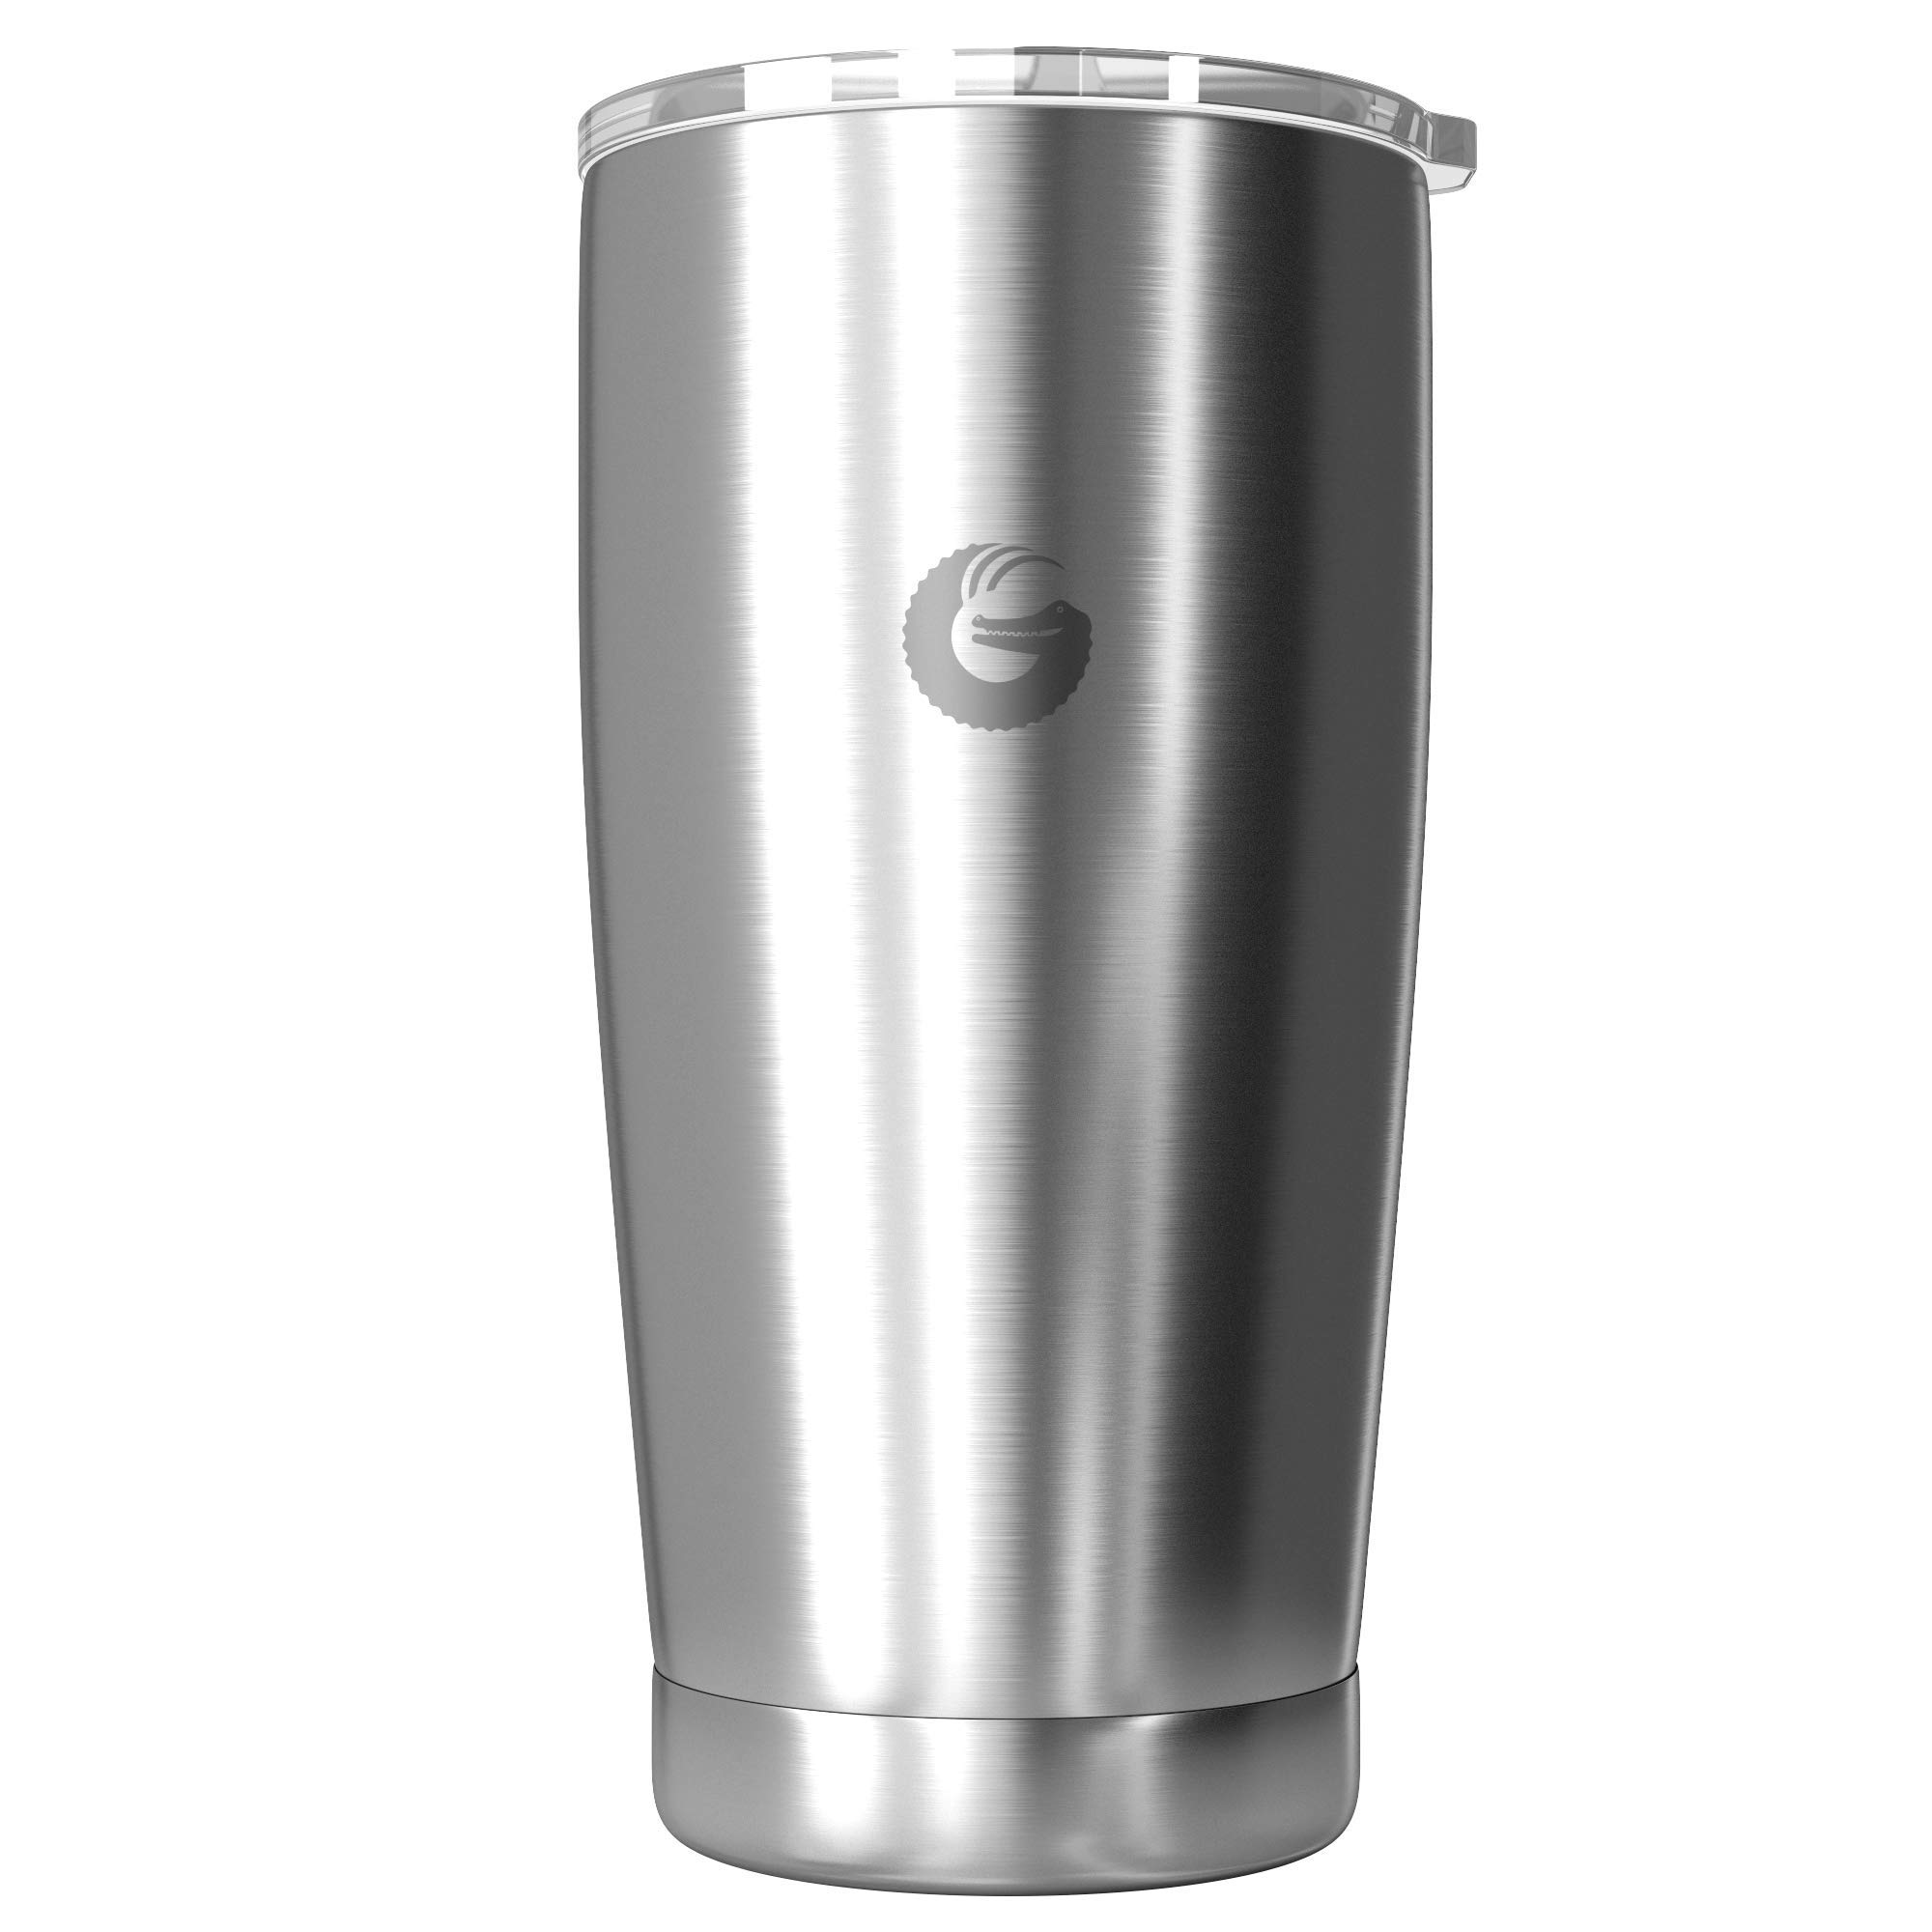 Coffee Gator Pour Over Coffee Maker - All in One Thermal Travel Mug and Brewer - Vacuum Insulated Stainless Steel - 20 ounce - Silver by Coffee Gator (Image #2)